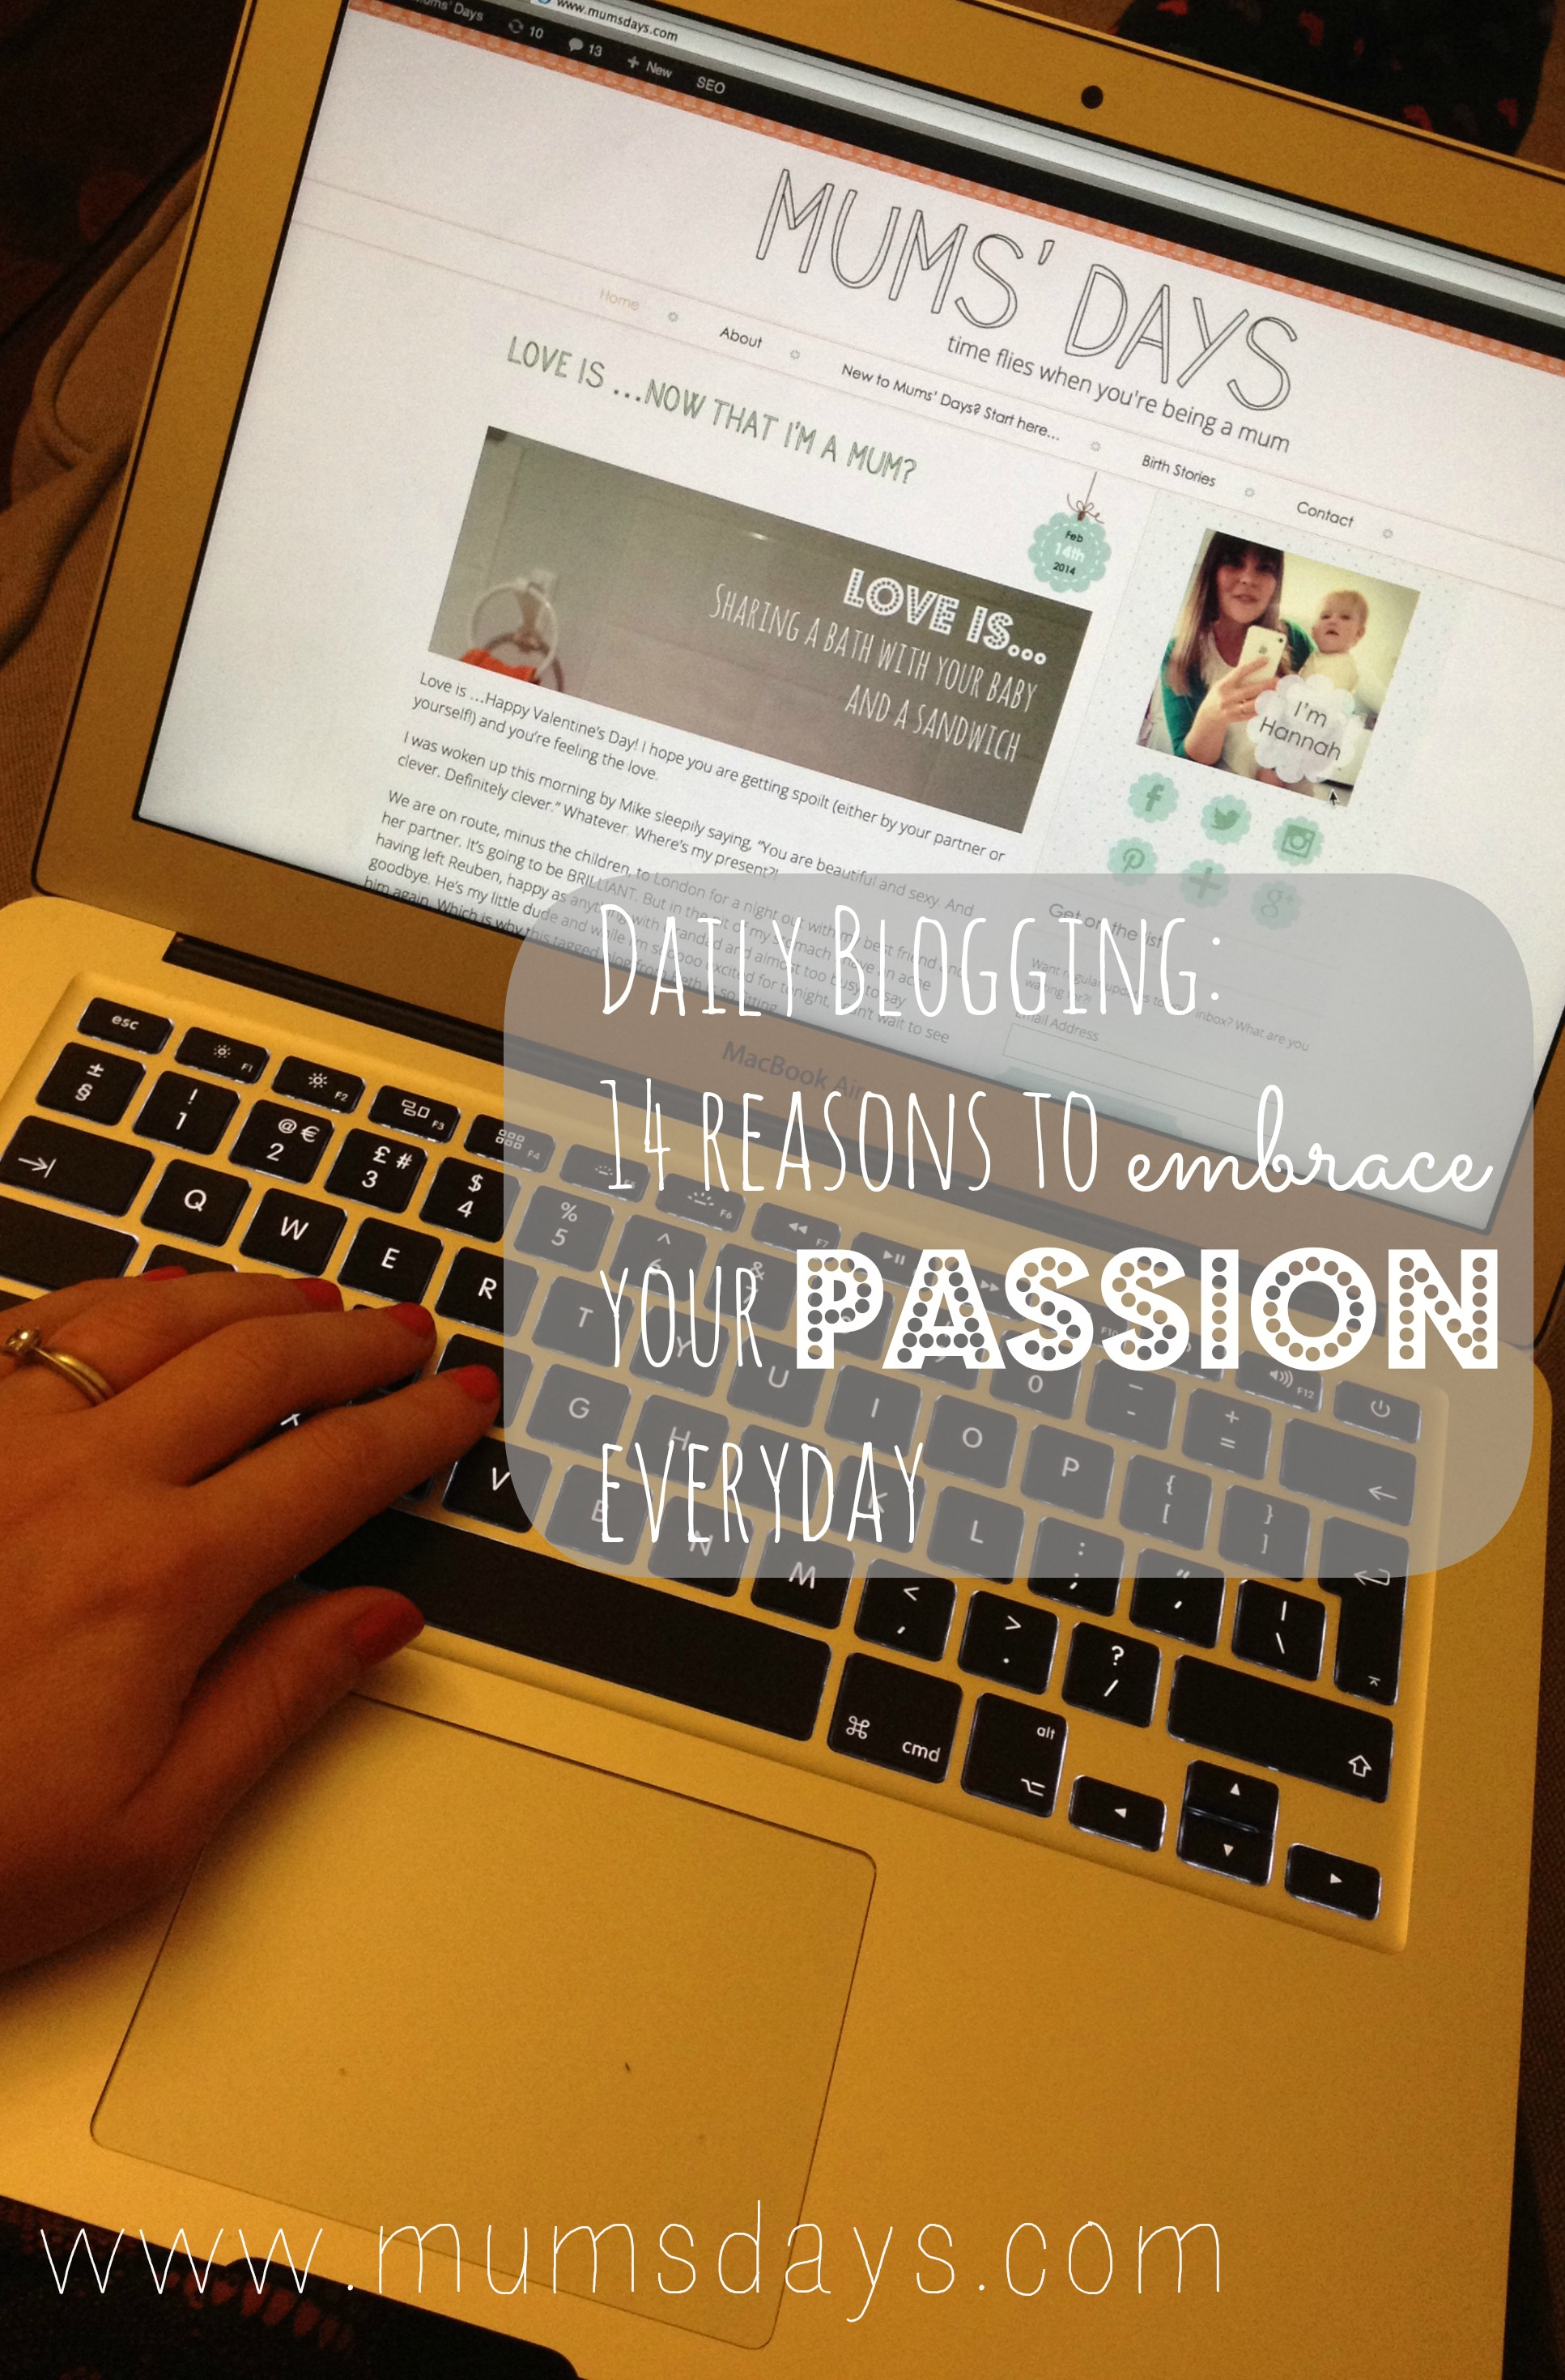 daily blogging - 14 reasons to embrace your passion everyday